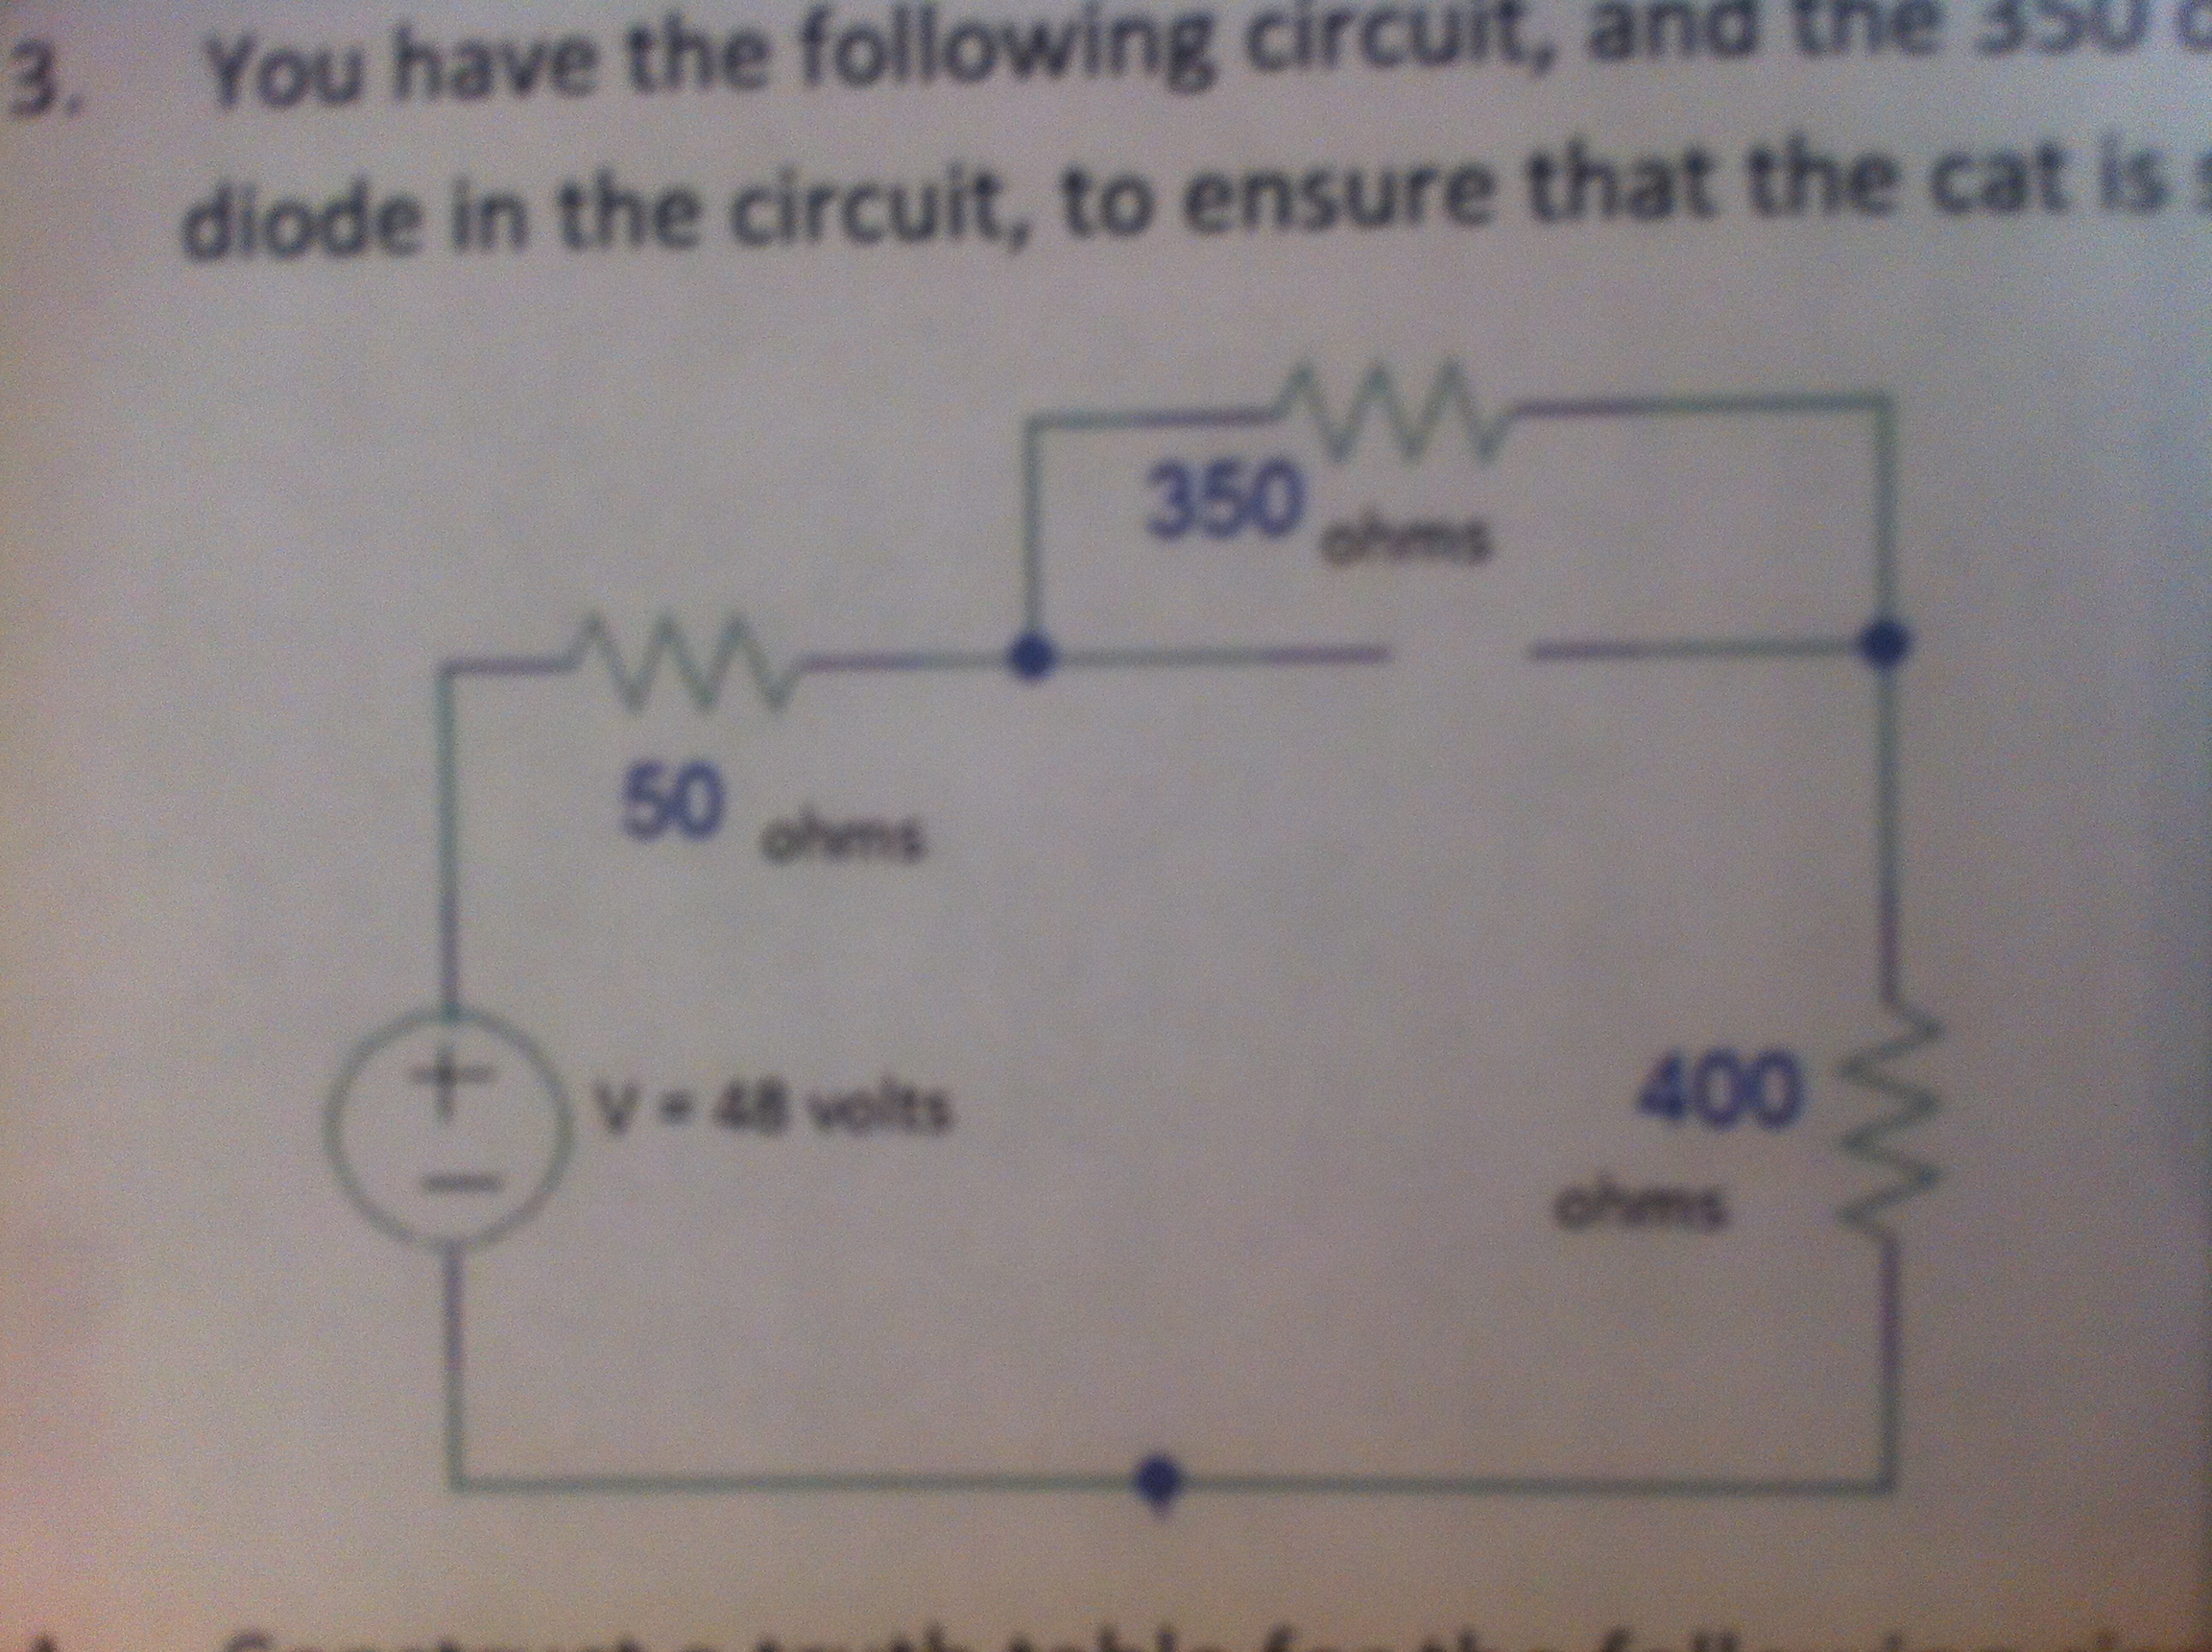 You have the following circuit, and the 350 ohm re